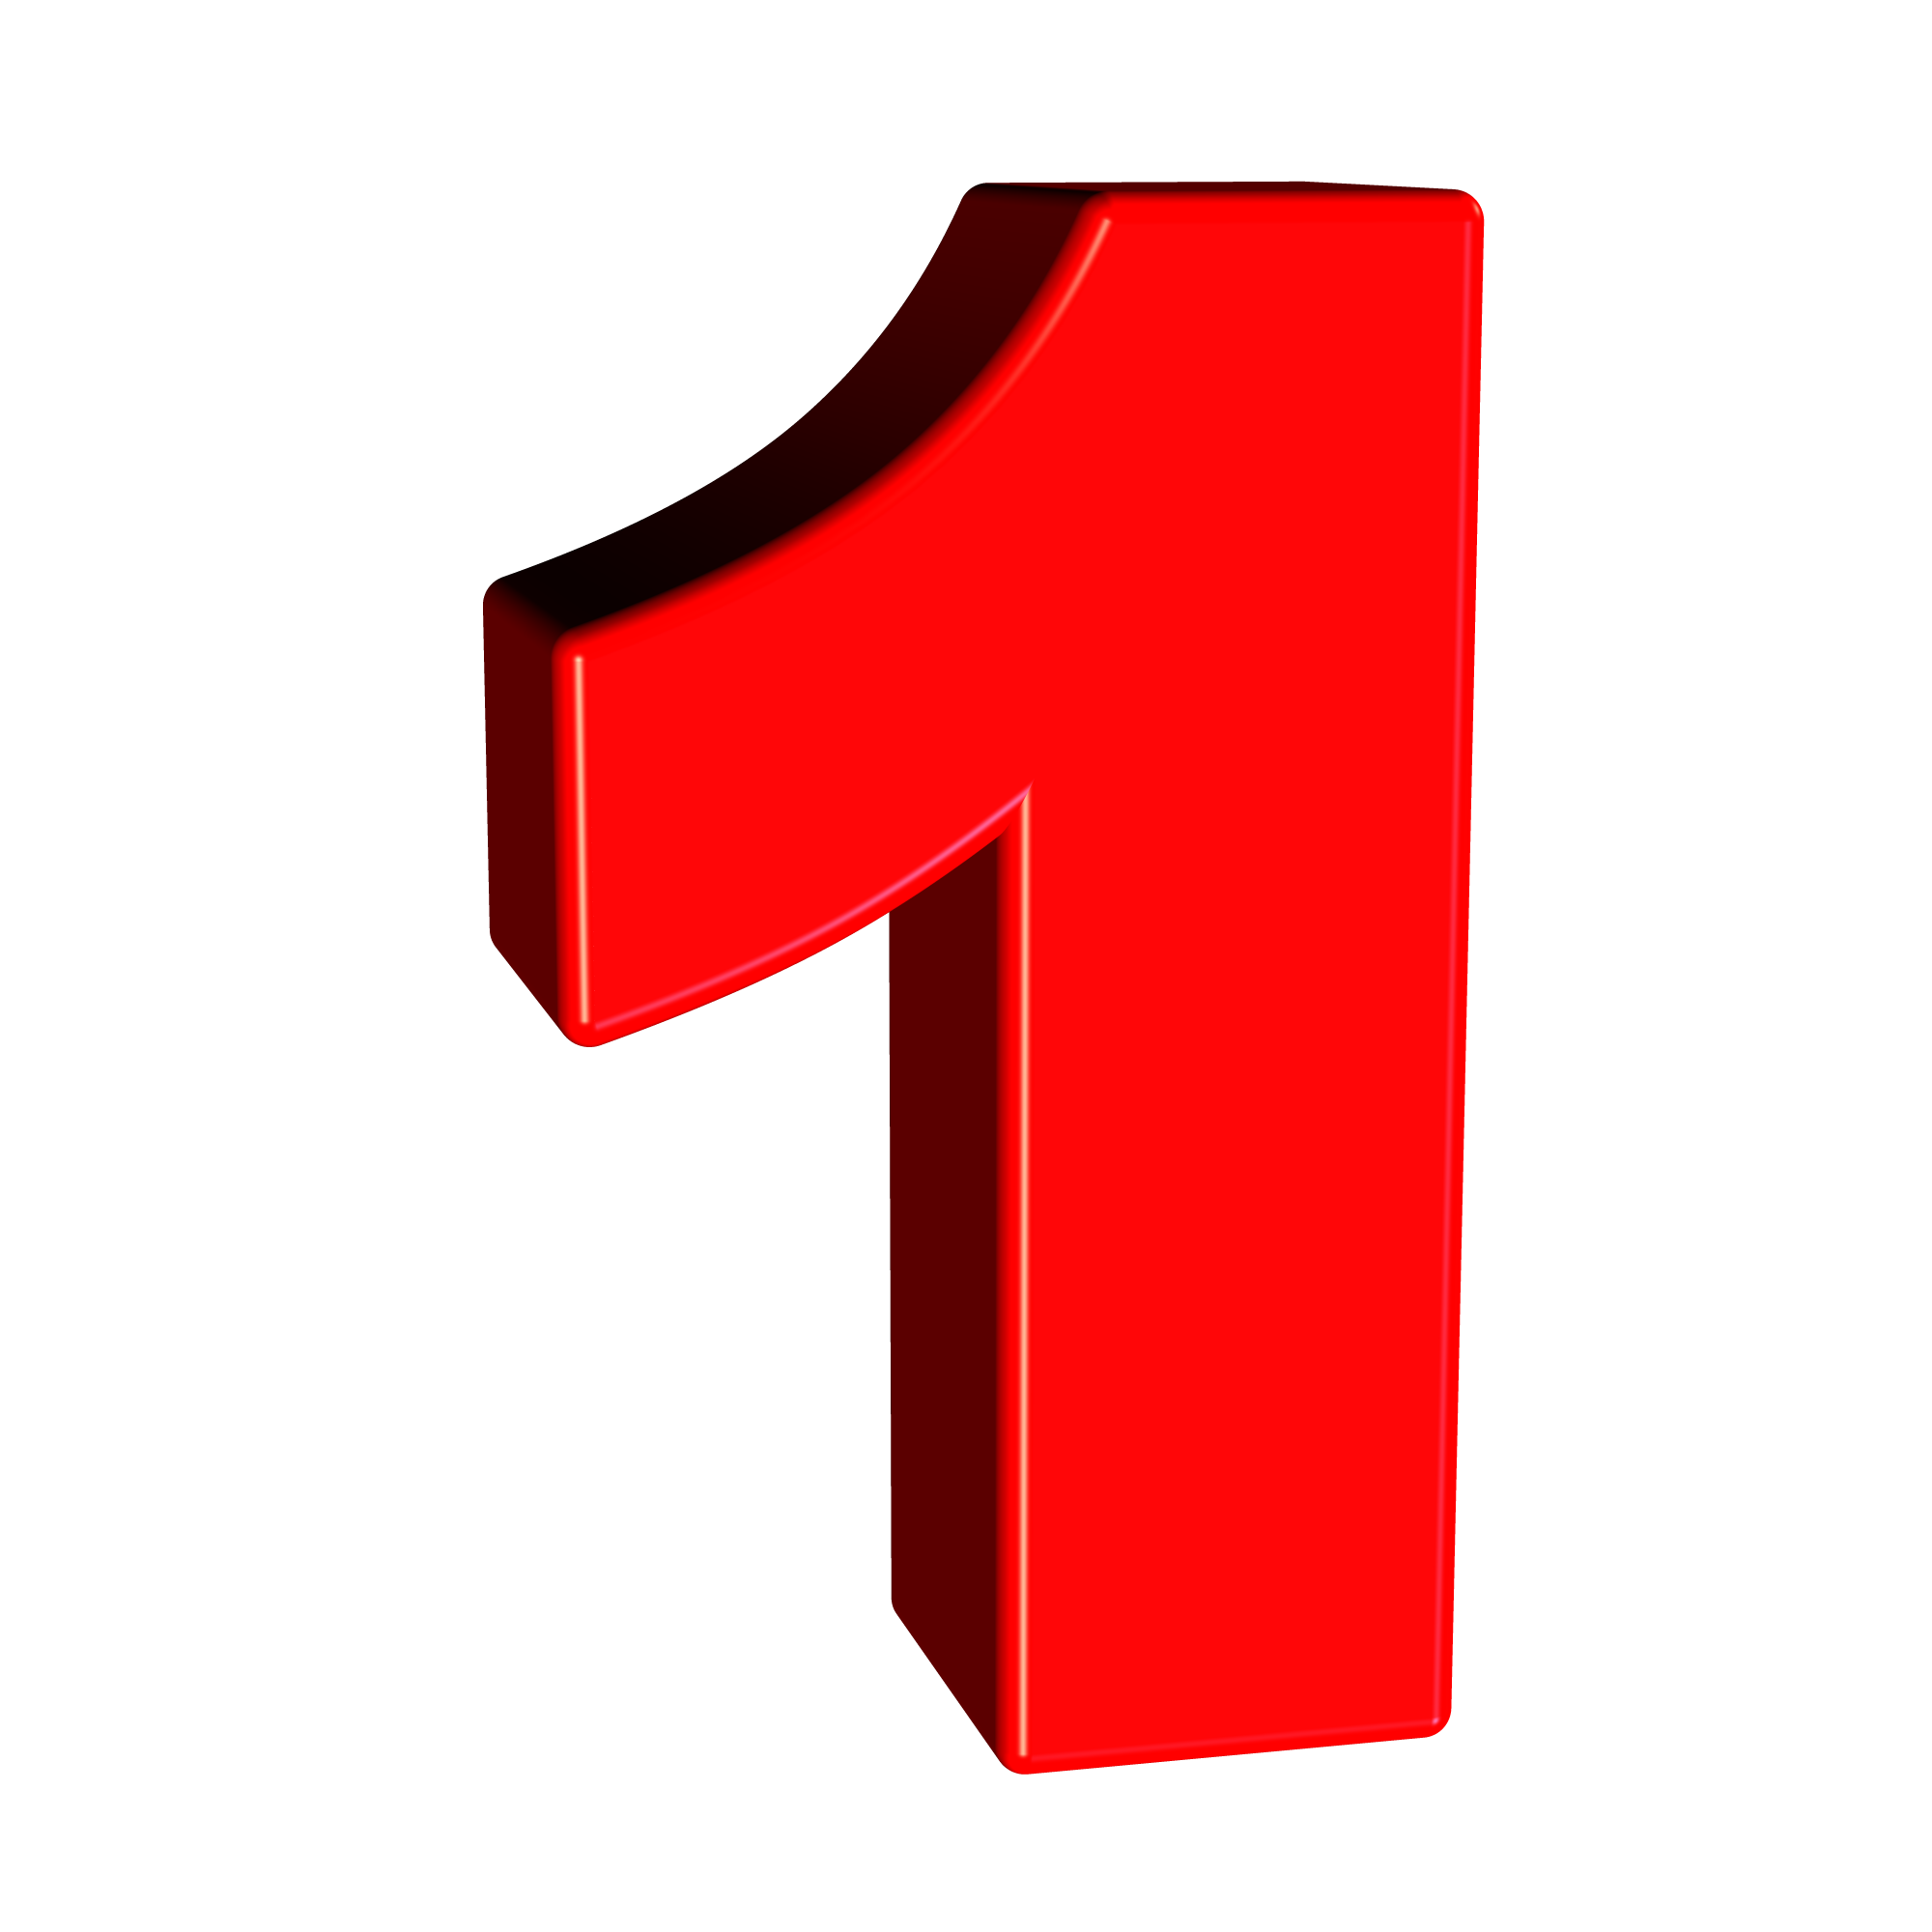 Number 1 png image. Red free stock photo